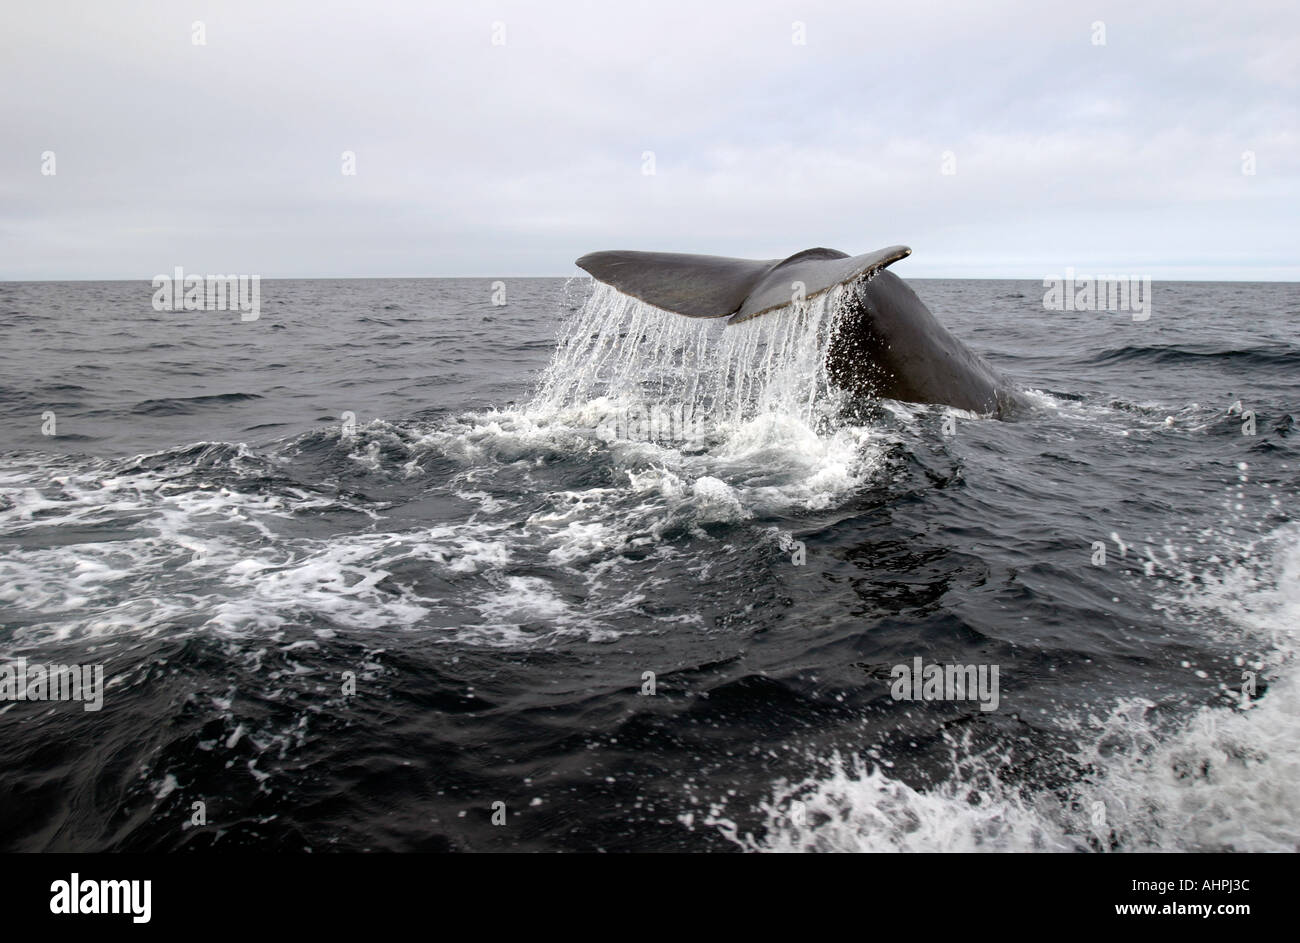 Whale Tail, Sperm Whale diving deep in Trinity Bay Bonavista Peninsula Newfoundland Canada - Stock Image